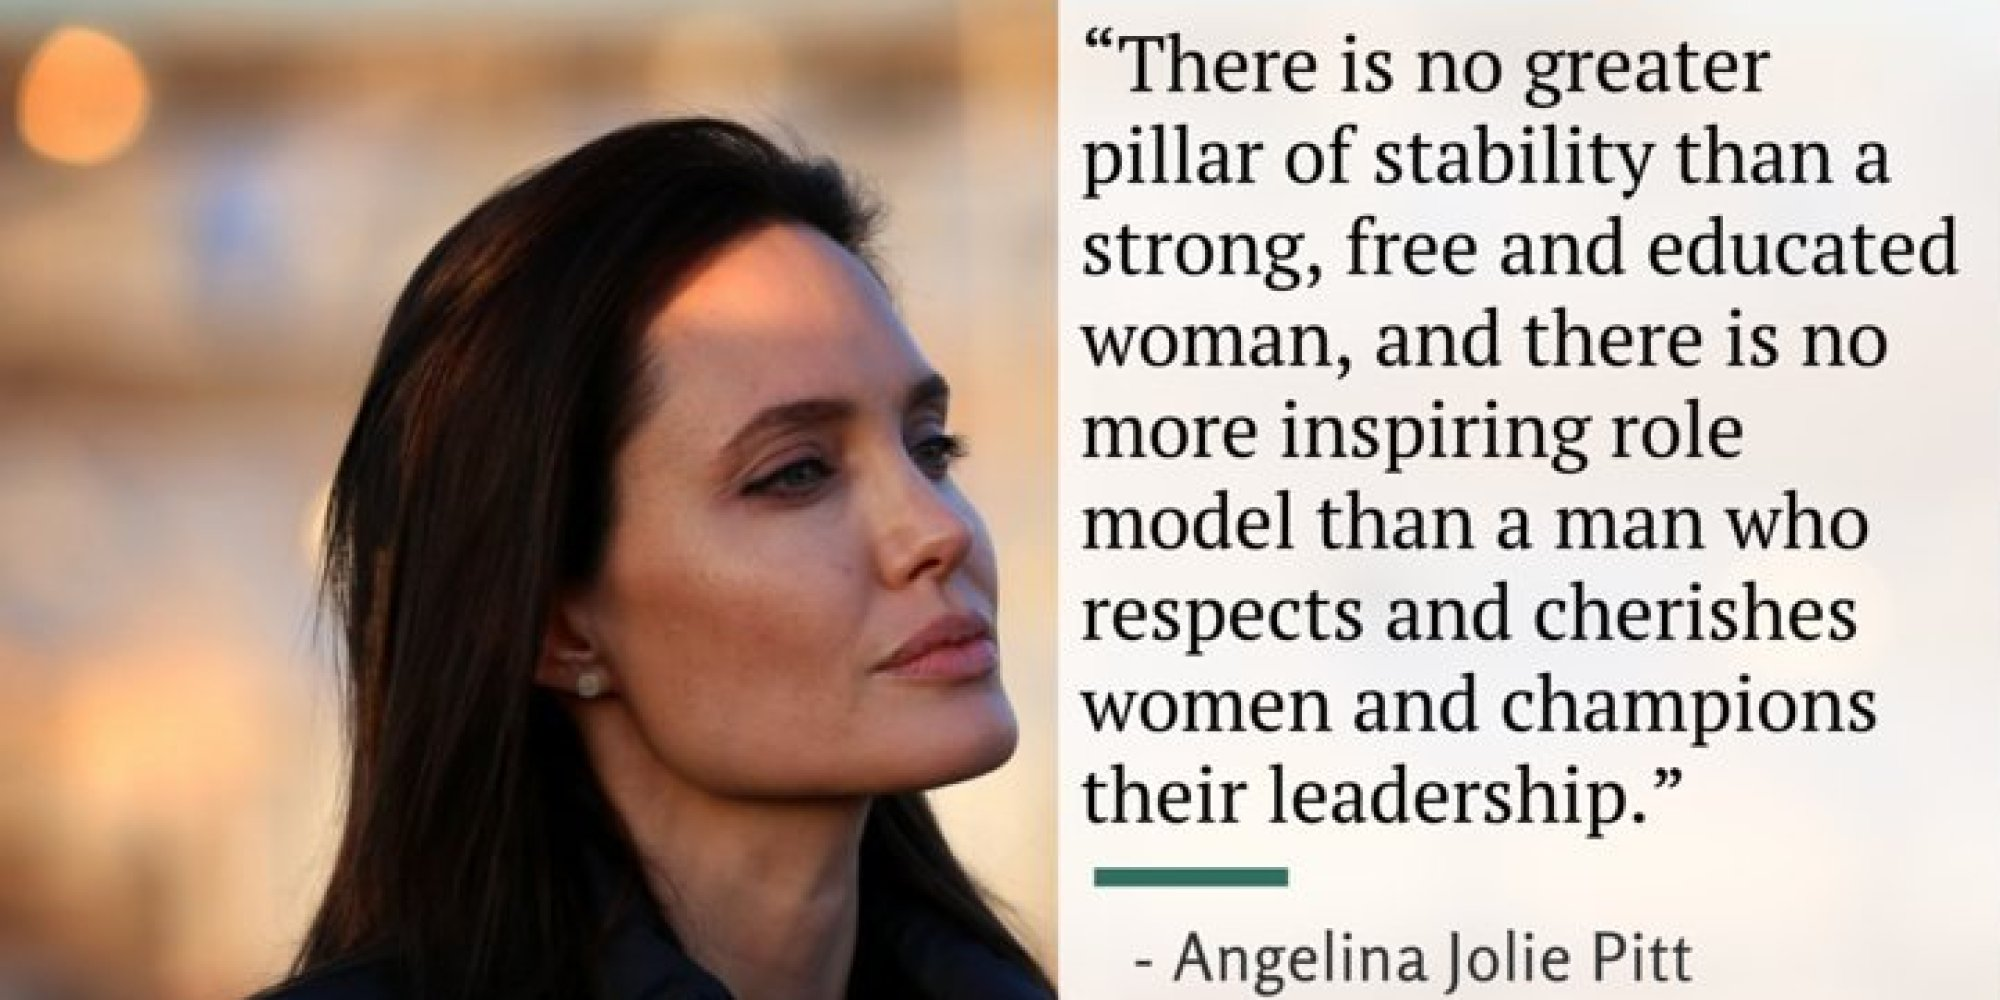 Human rights activist and a UN Goodwill Ambassador, Angelina ...